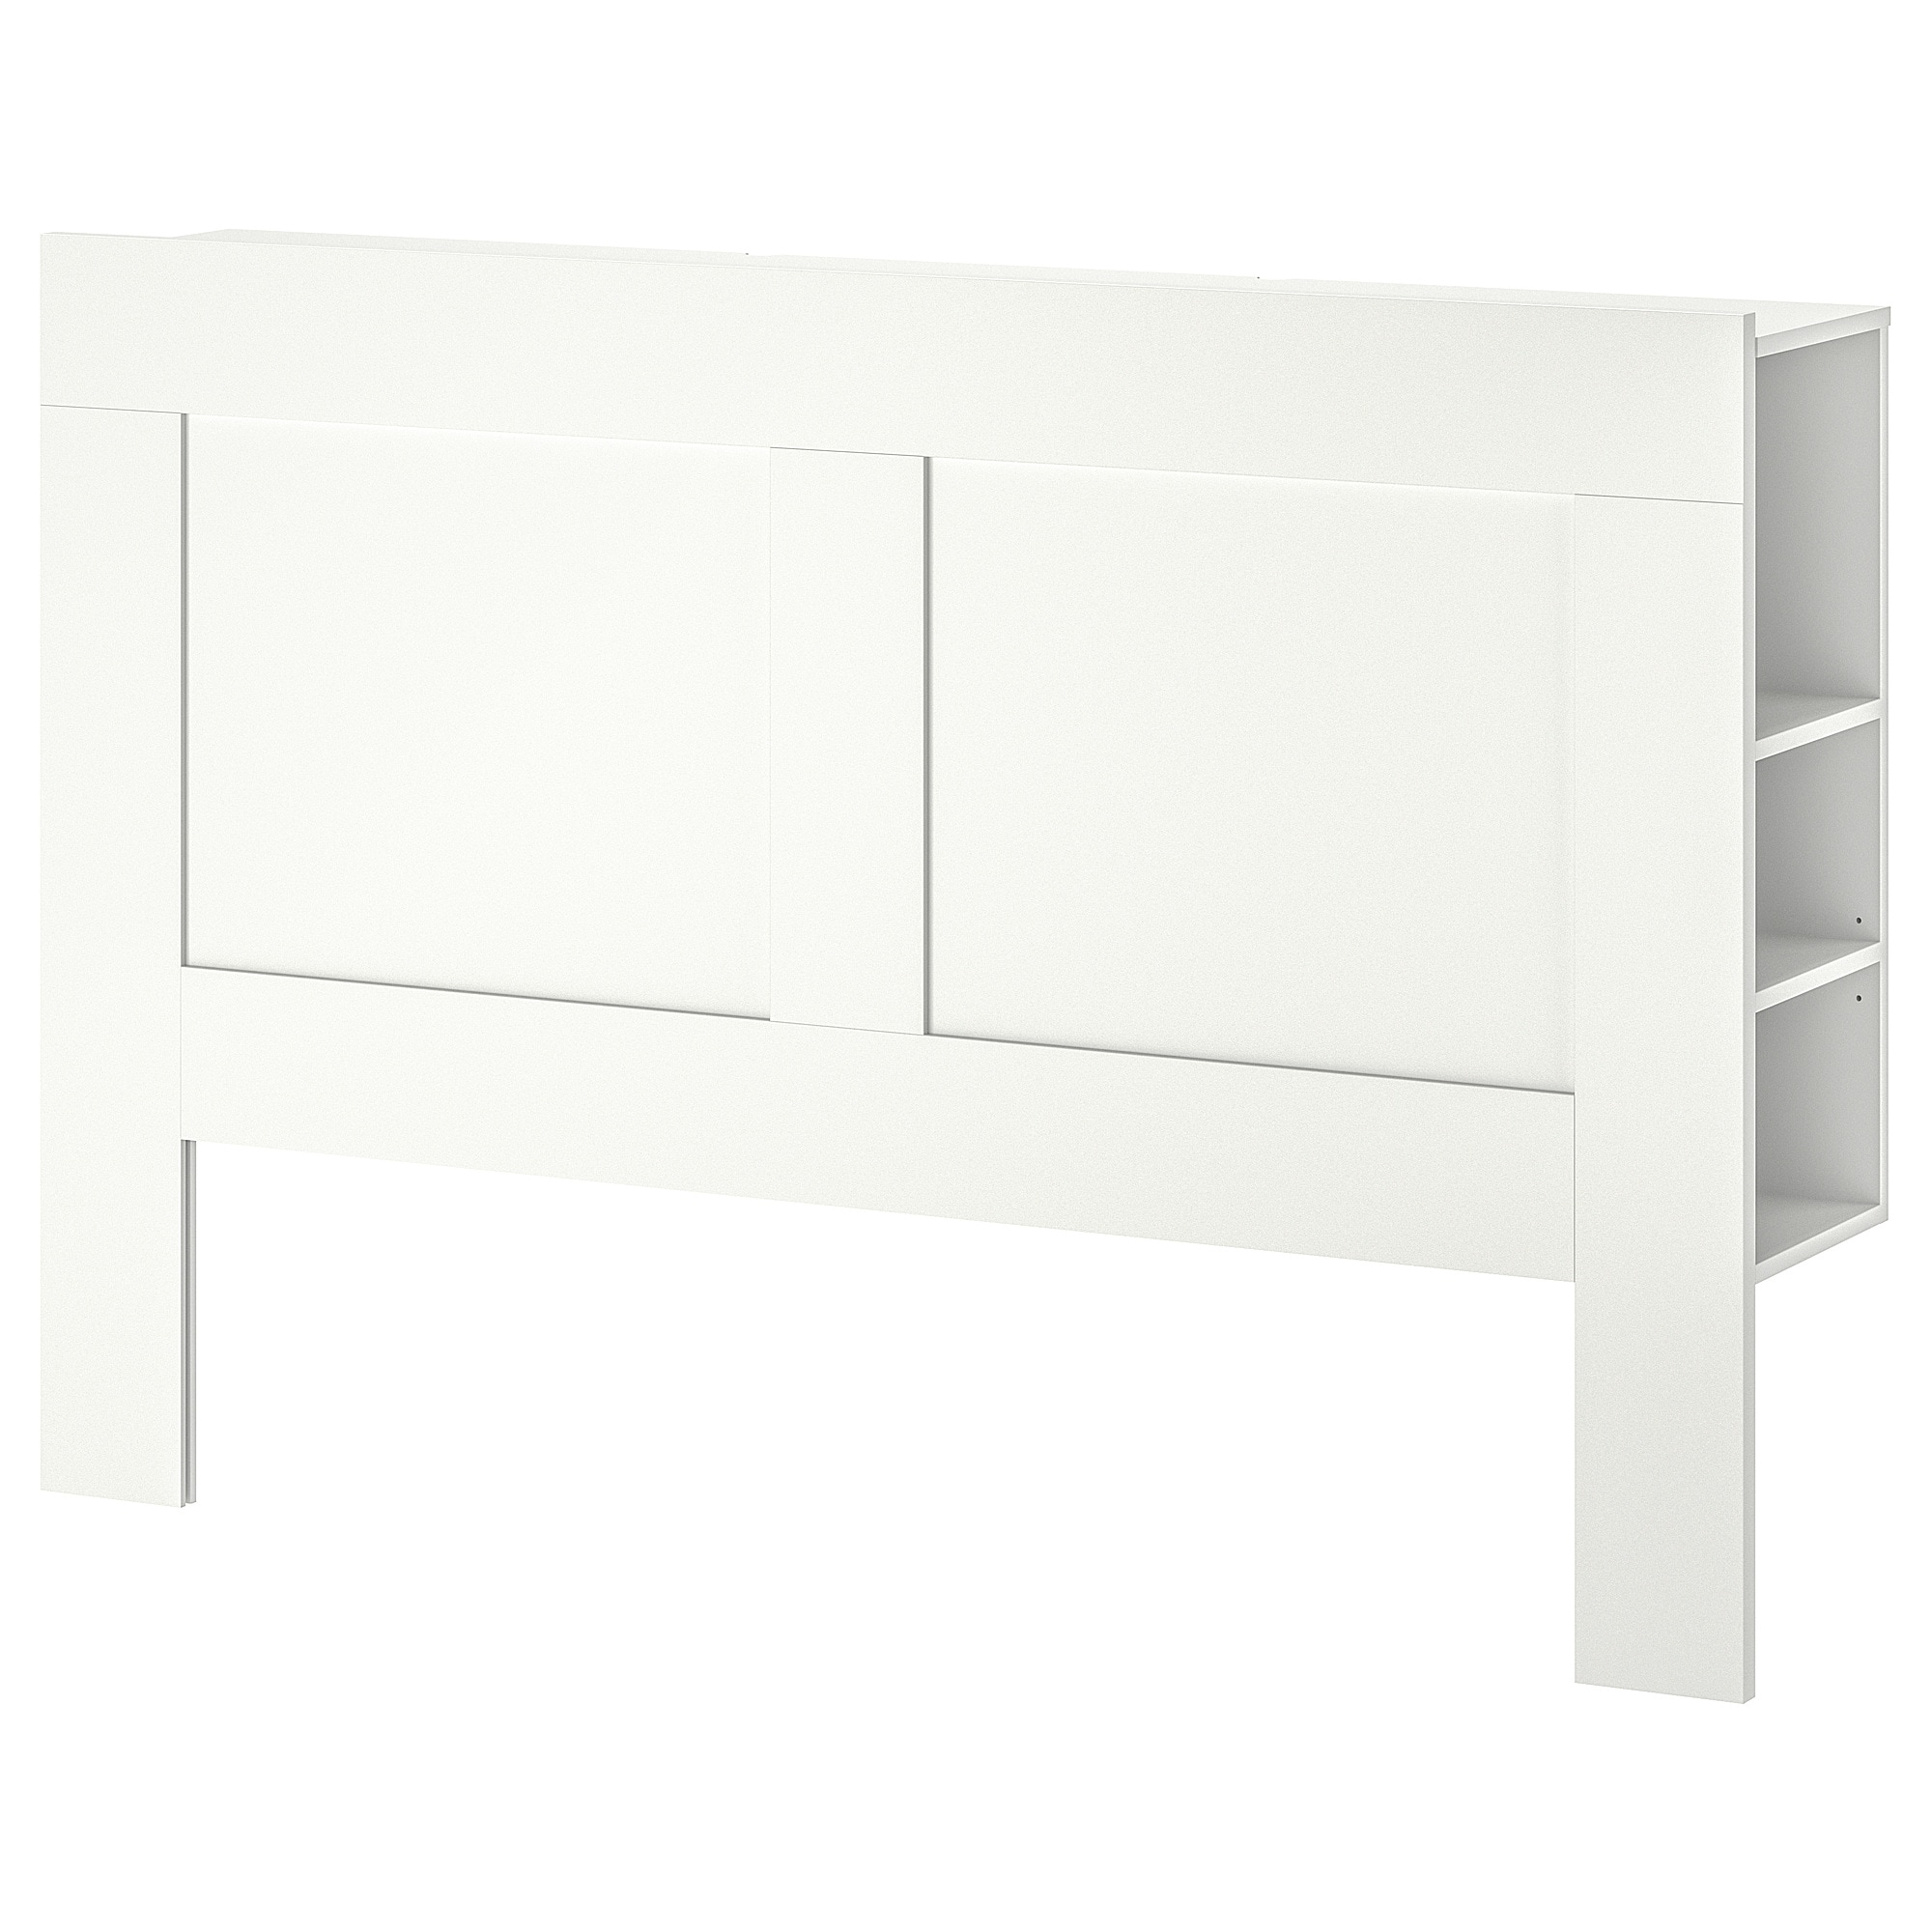 Mesa Cama Ikea Brimnes Headboard With Storage Compartment White